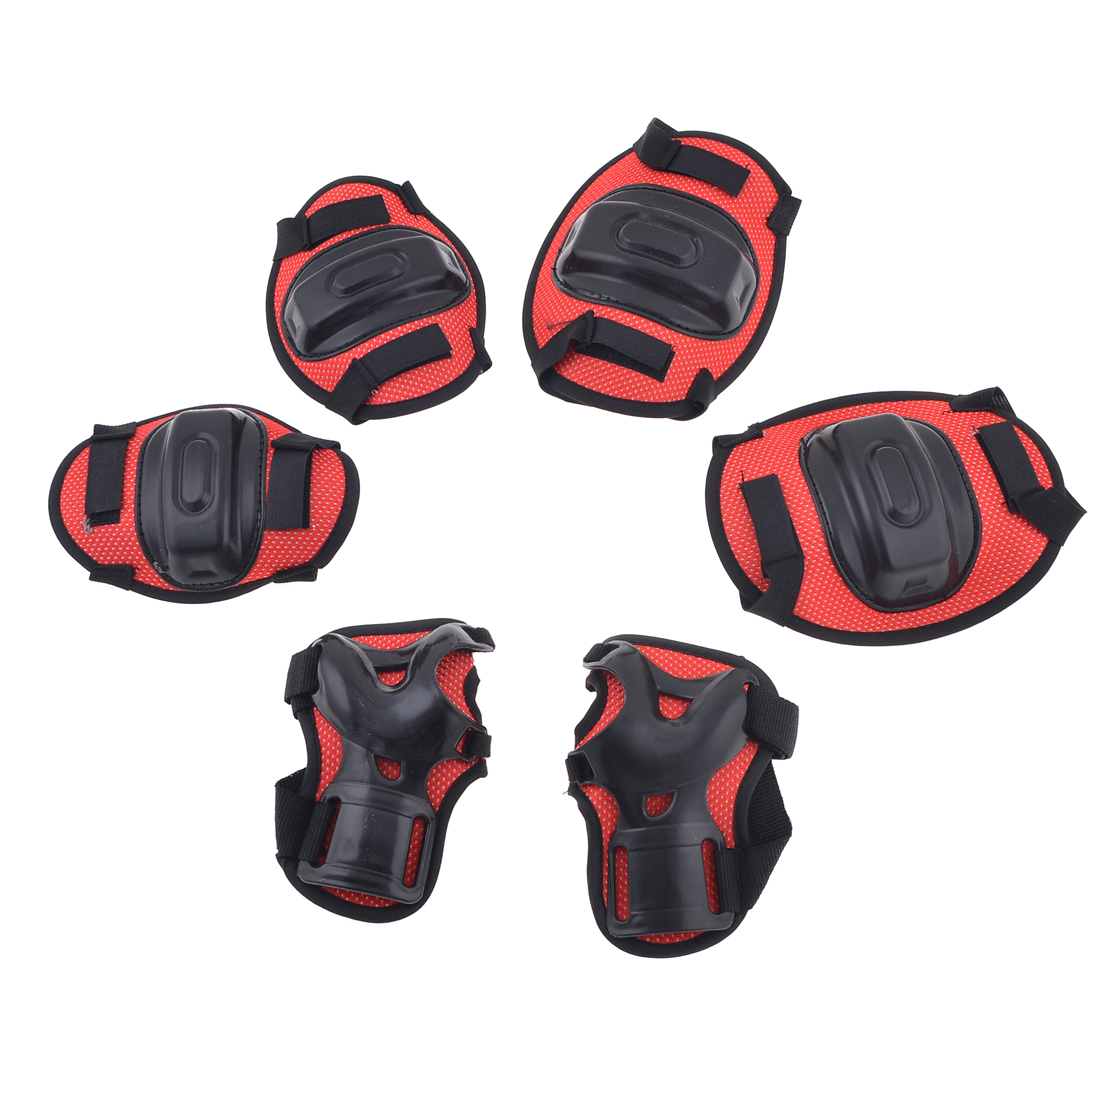 Children-Roller-Knee-Palm-Elbow-Guard-Support-Brace-Pad-Black-Red-Set